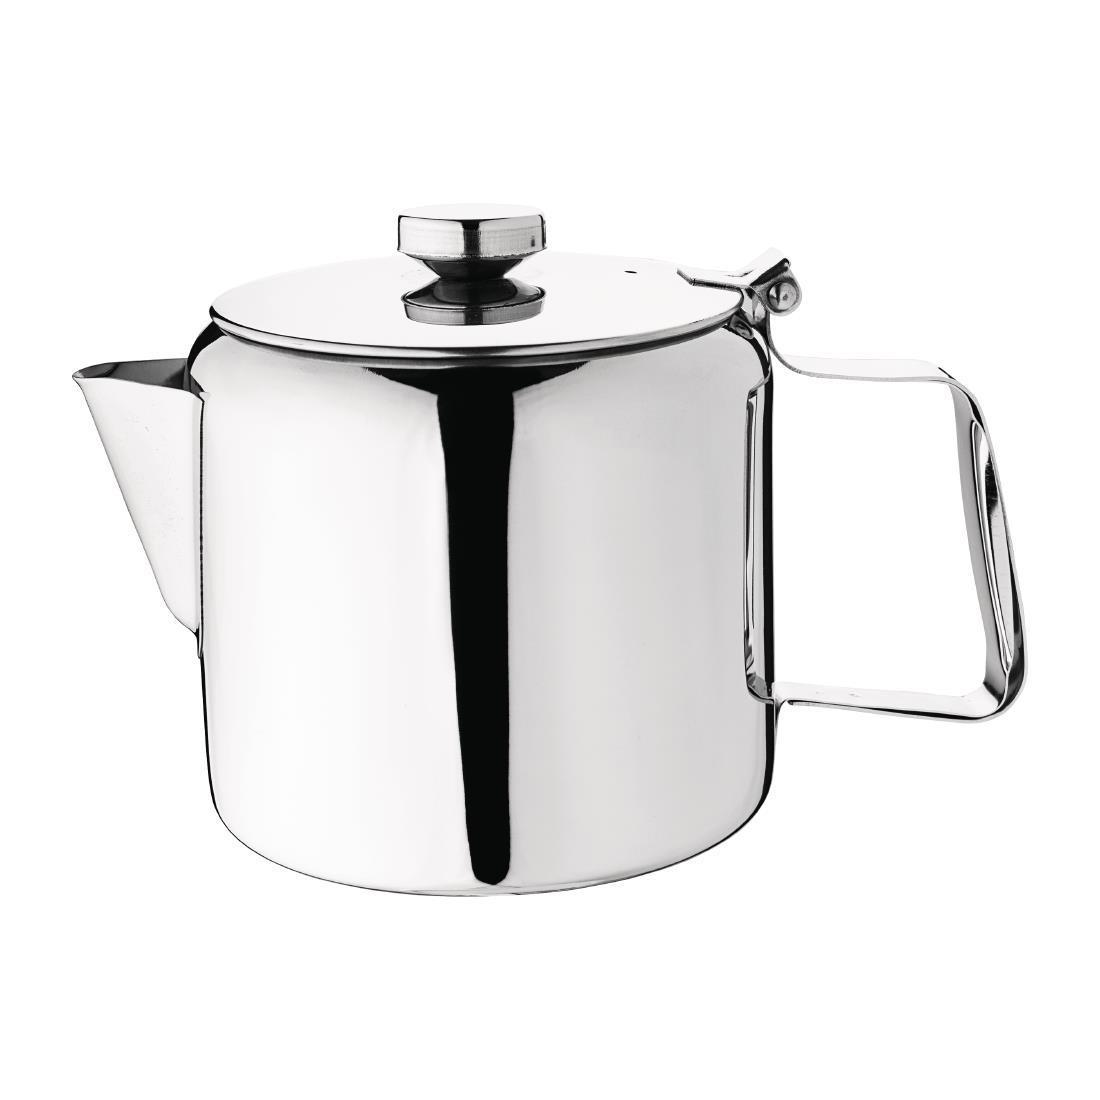 Olympia Concorde Stainless Steel Teapot 2Ltr